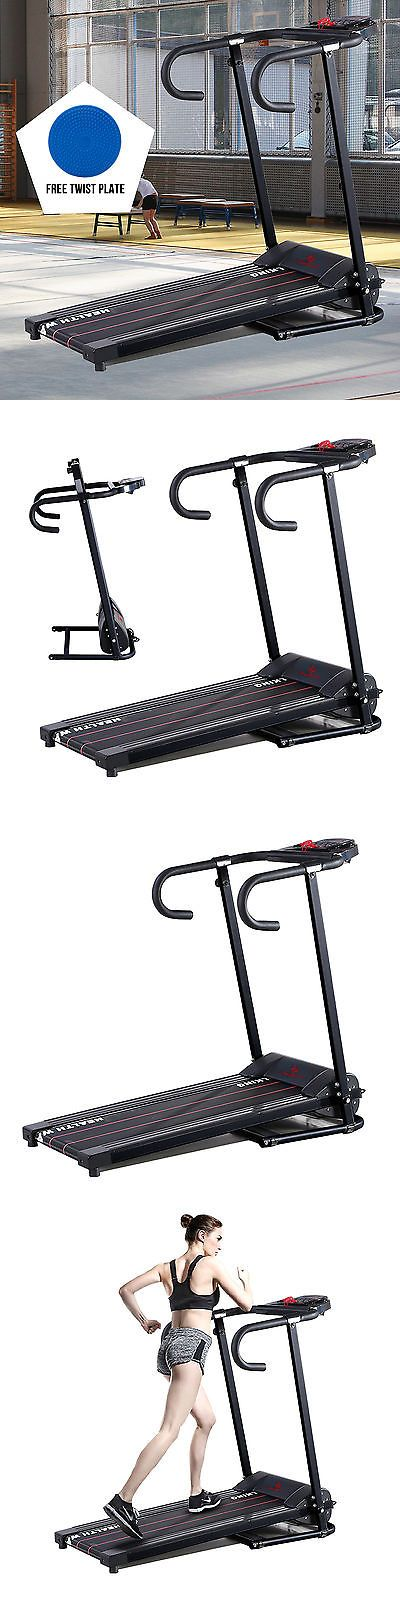 Treadmills 15280: Treadmill Portable 500W Electric Motorized Folding Runing Cardio Fitness Machine -> BUY IT NOW ONLY: $178.9 on eBay!